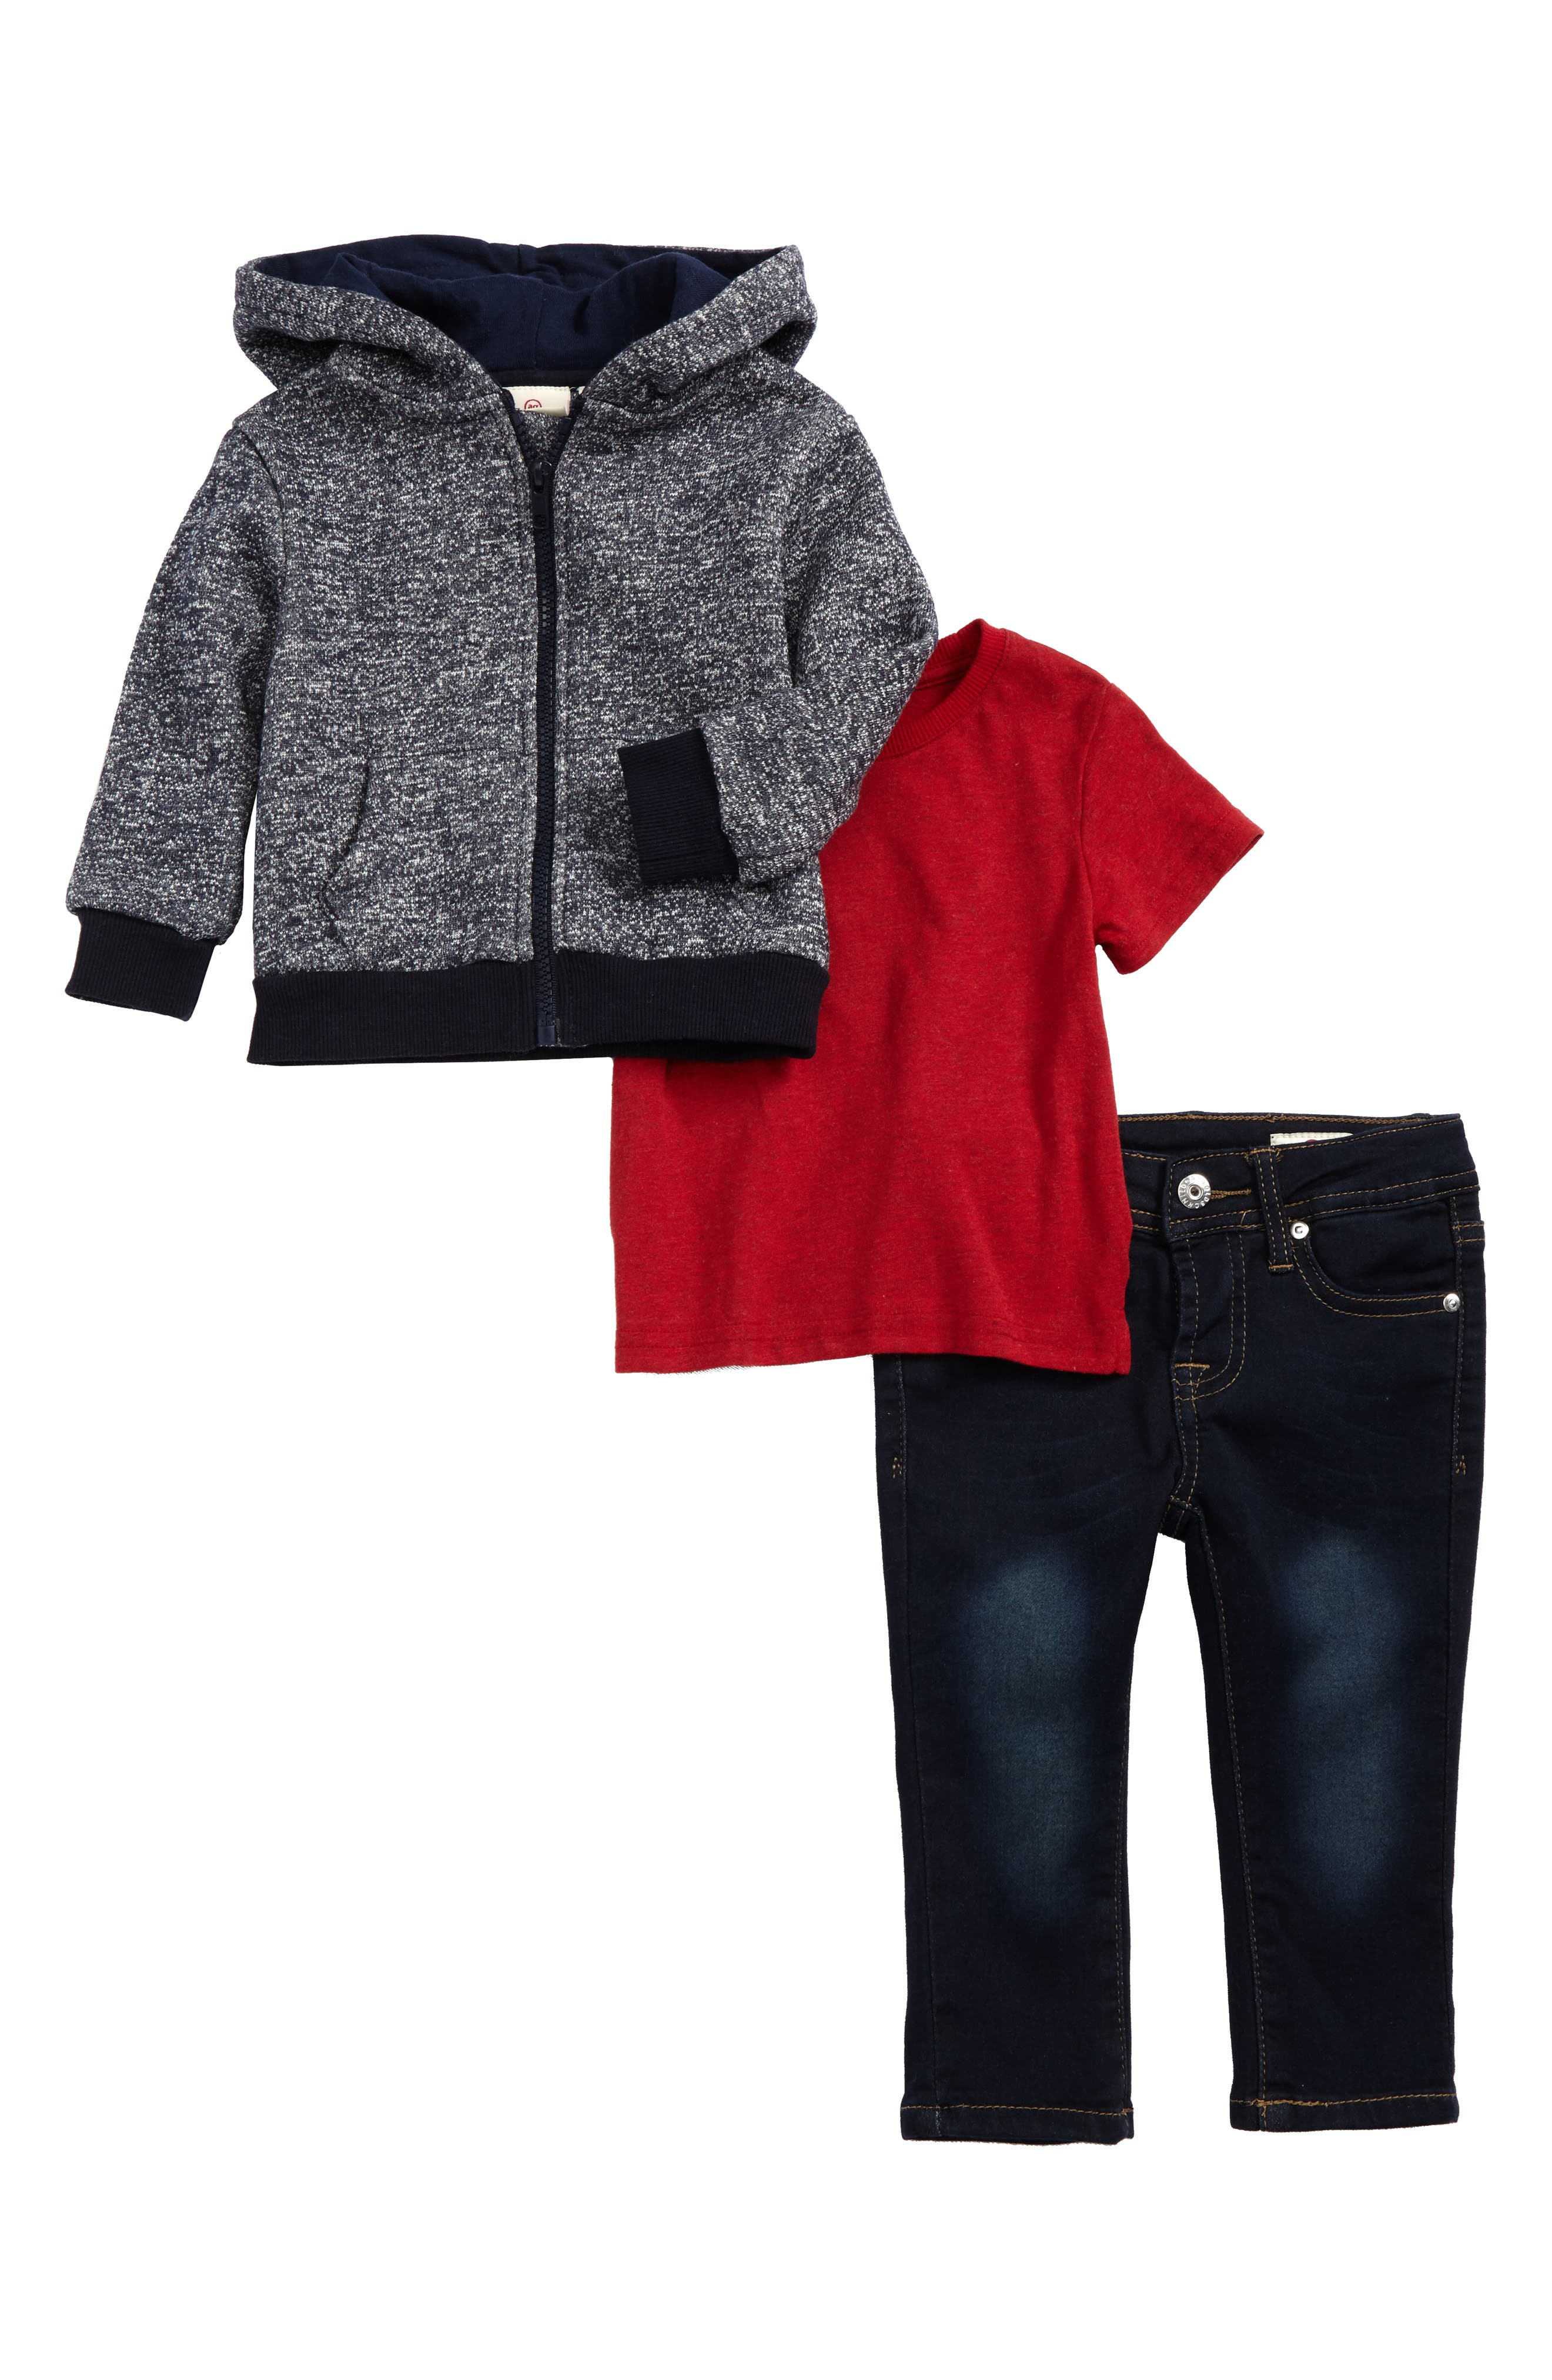 Alternate Image 1 Selected - ag adriano goldschmied kids French Terry Hoodie, T-Shirt & Jeans Set (Baby Boys)